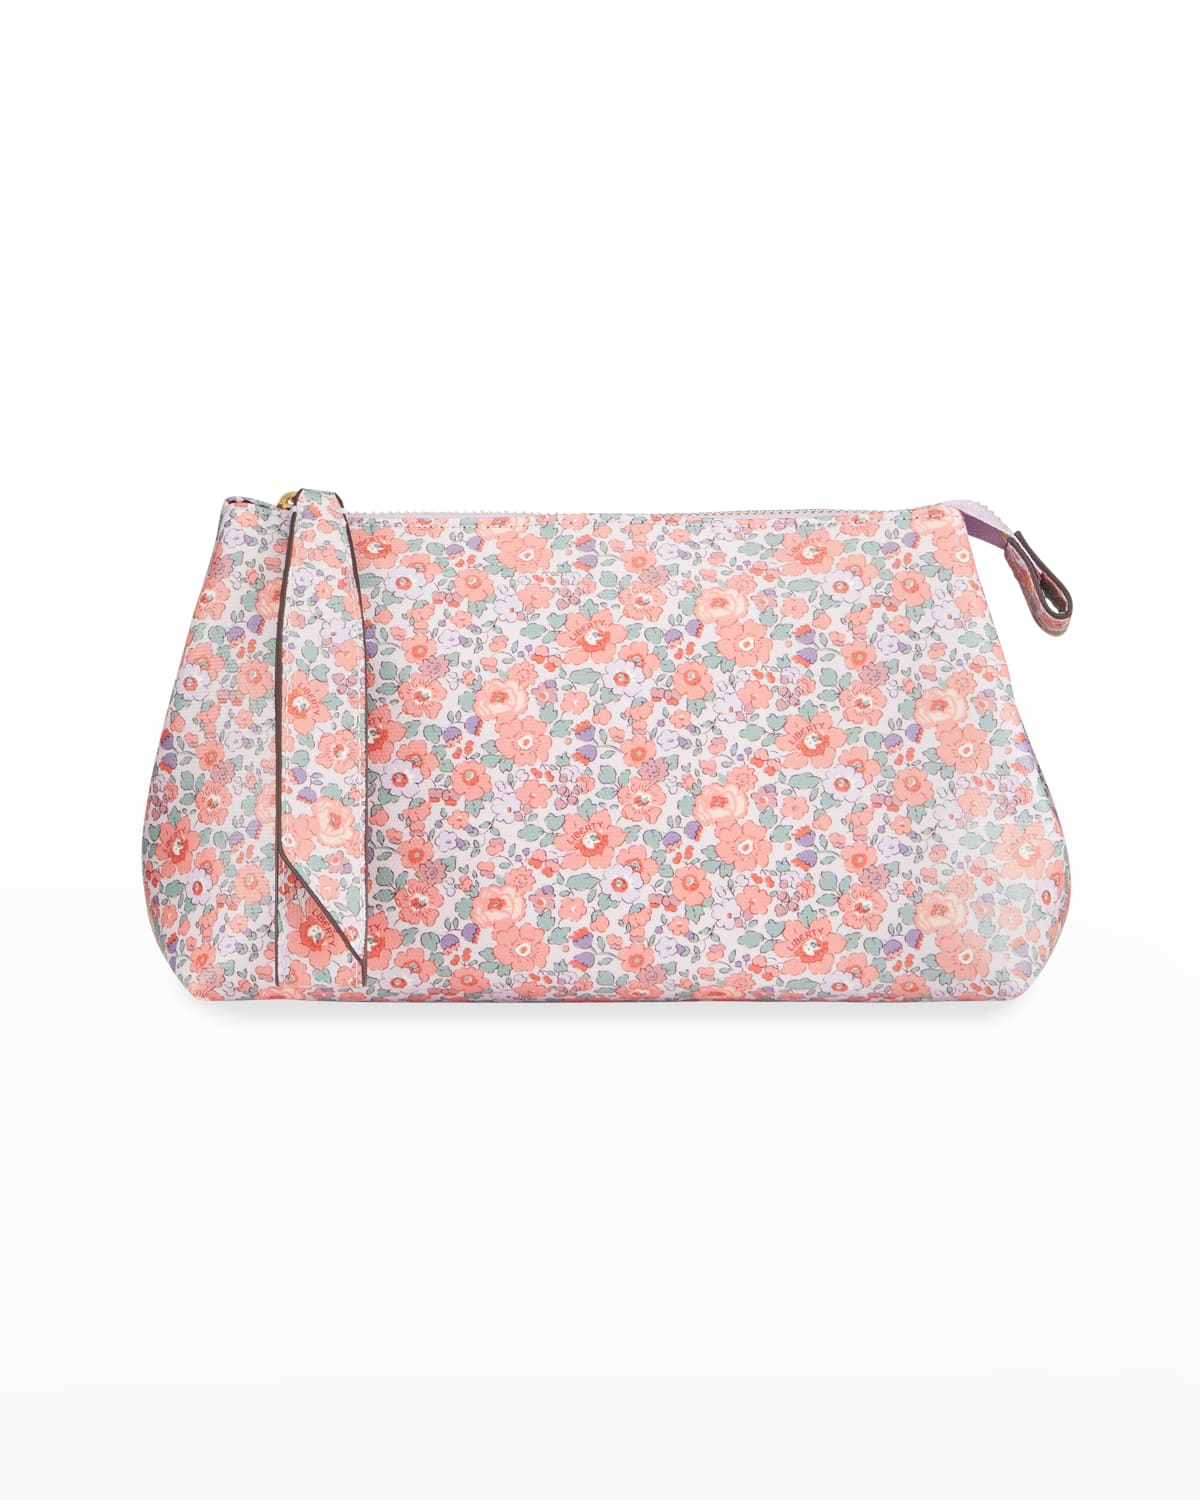 Small Betsy Floral-Print Zip Clutch Bag